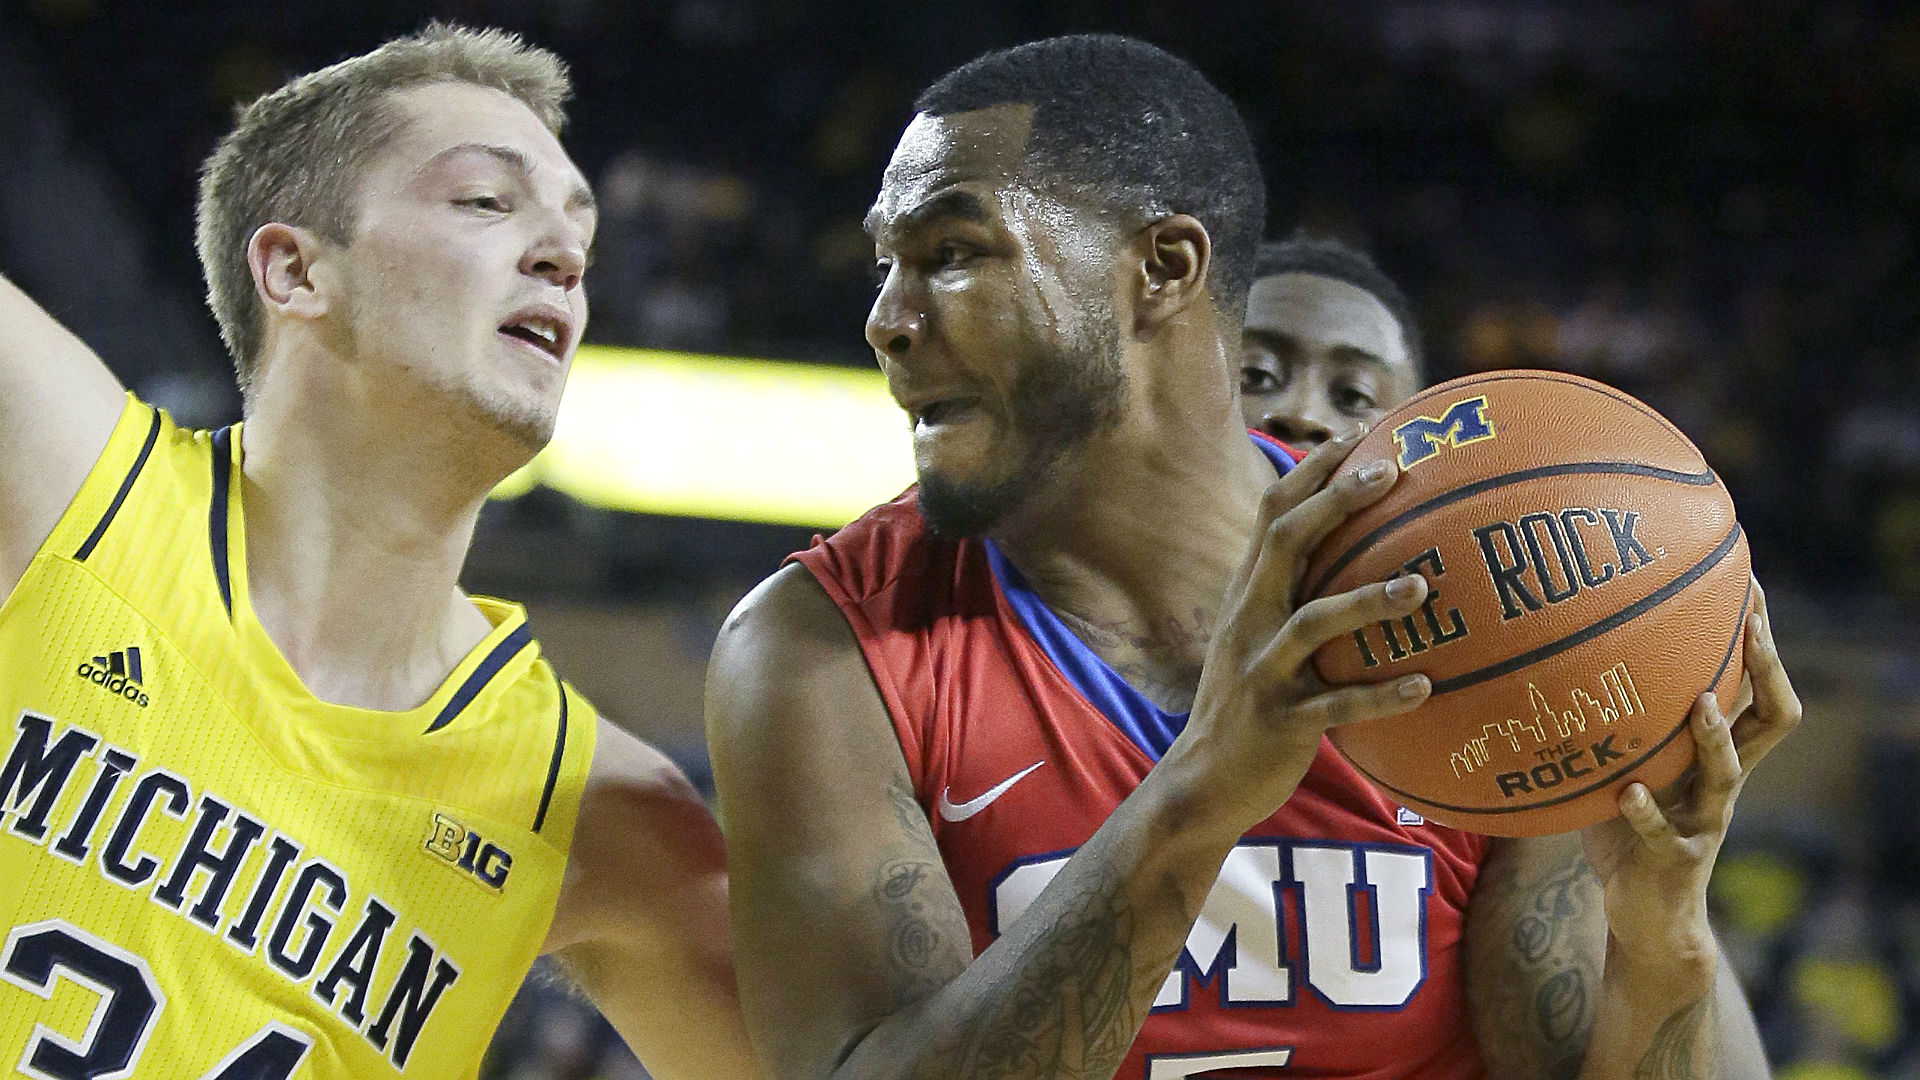 College basketball betting lines and picks – SMU rolls into Houston